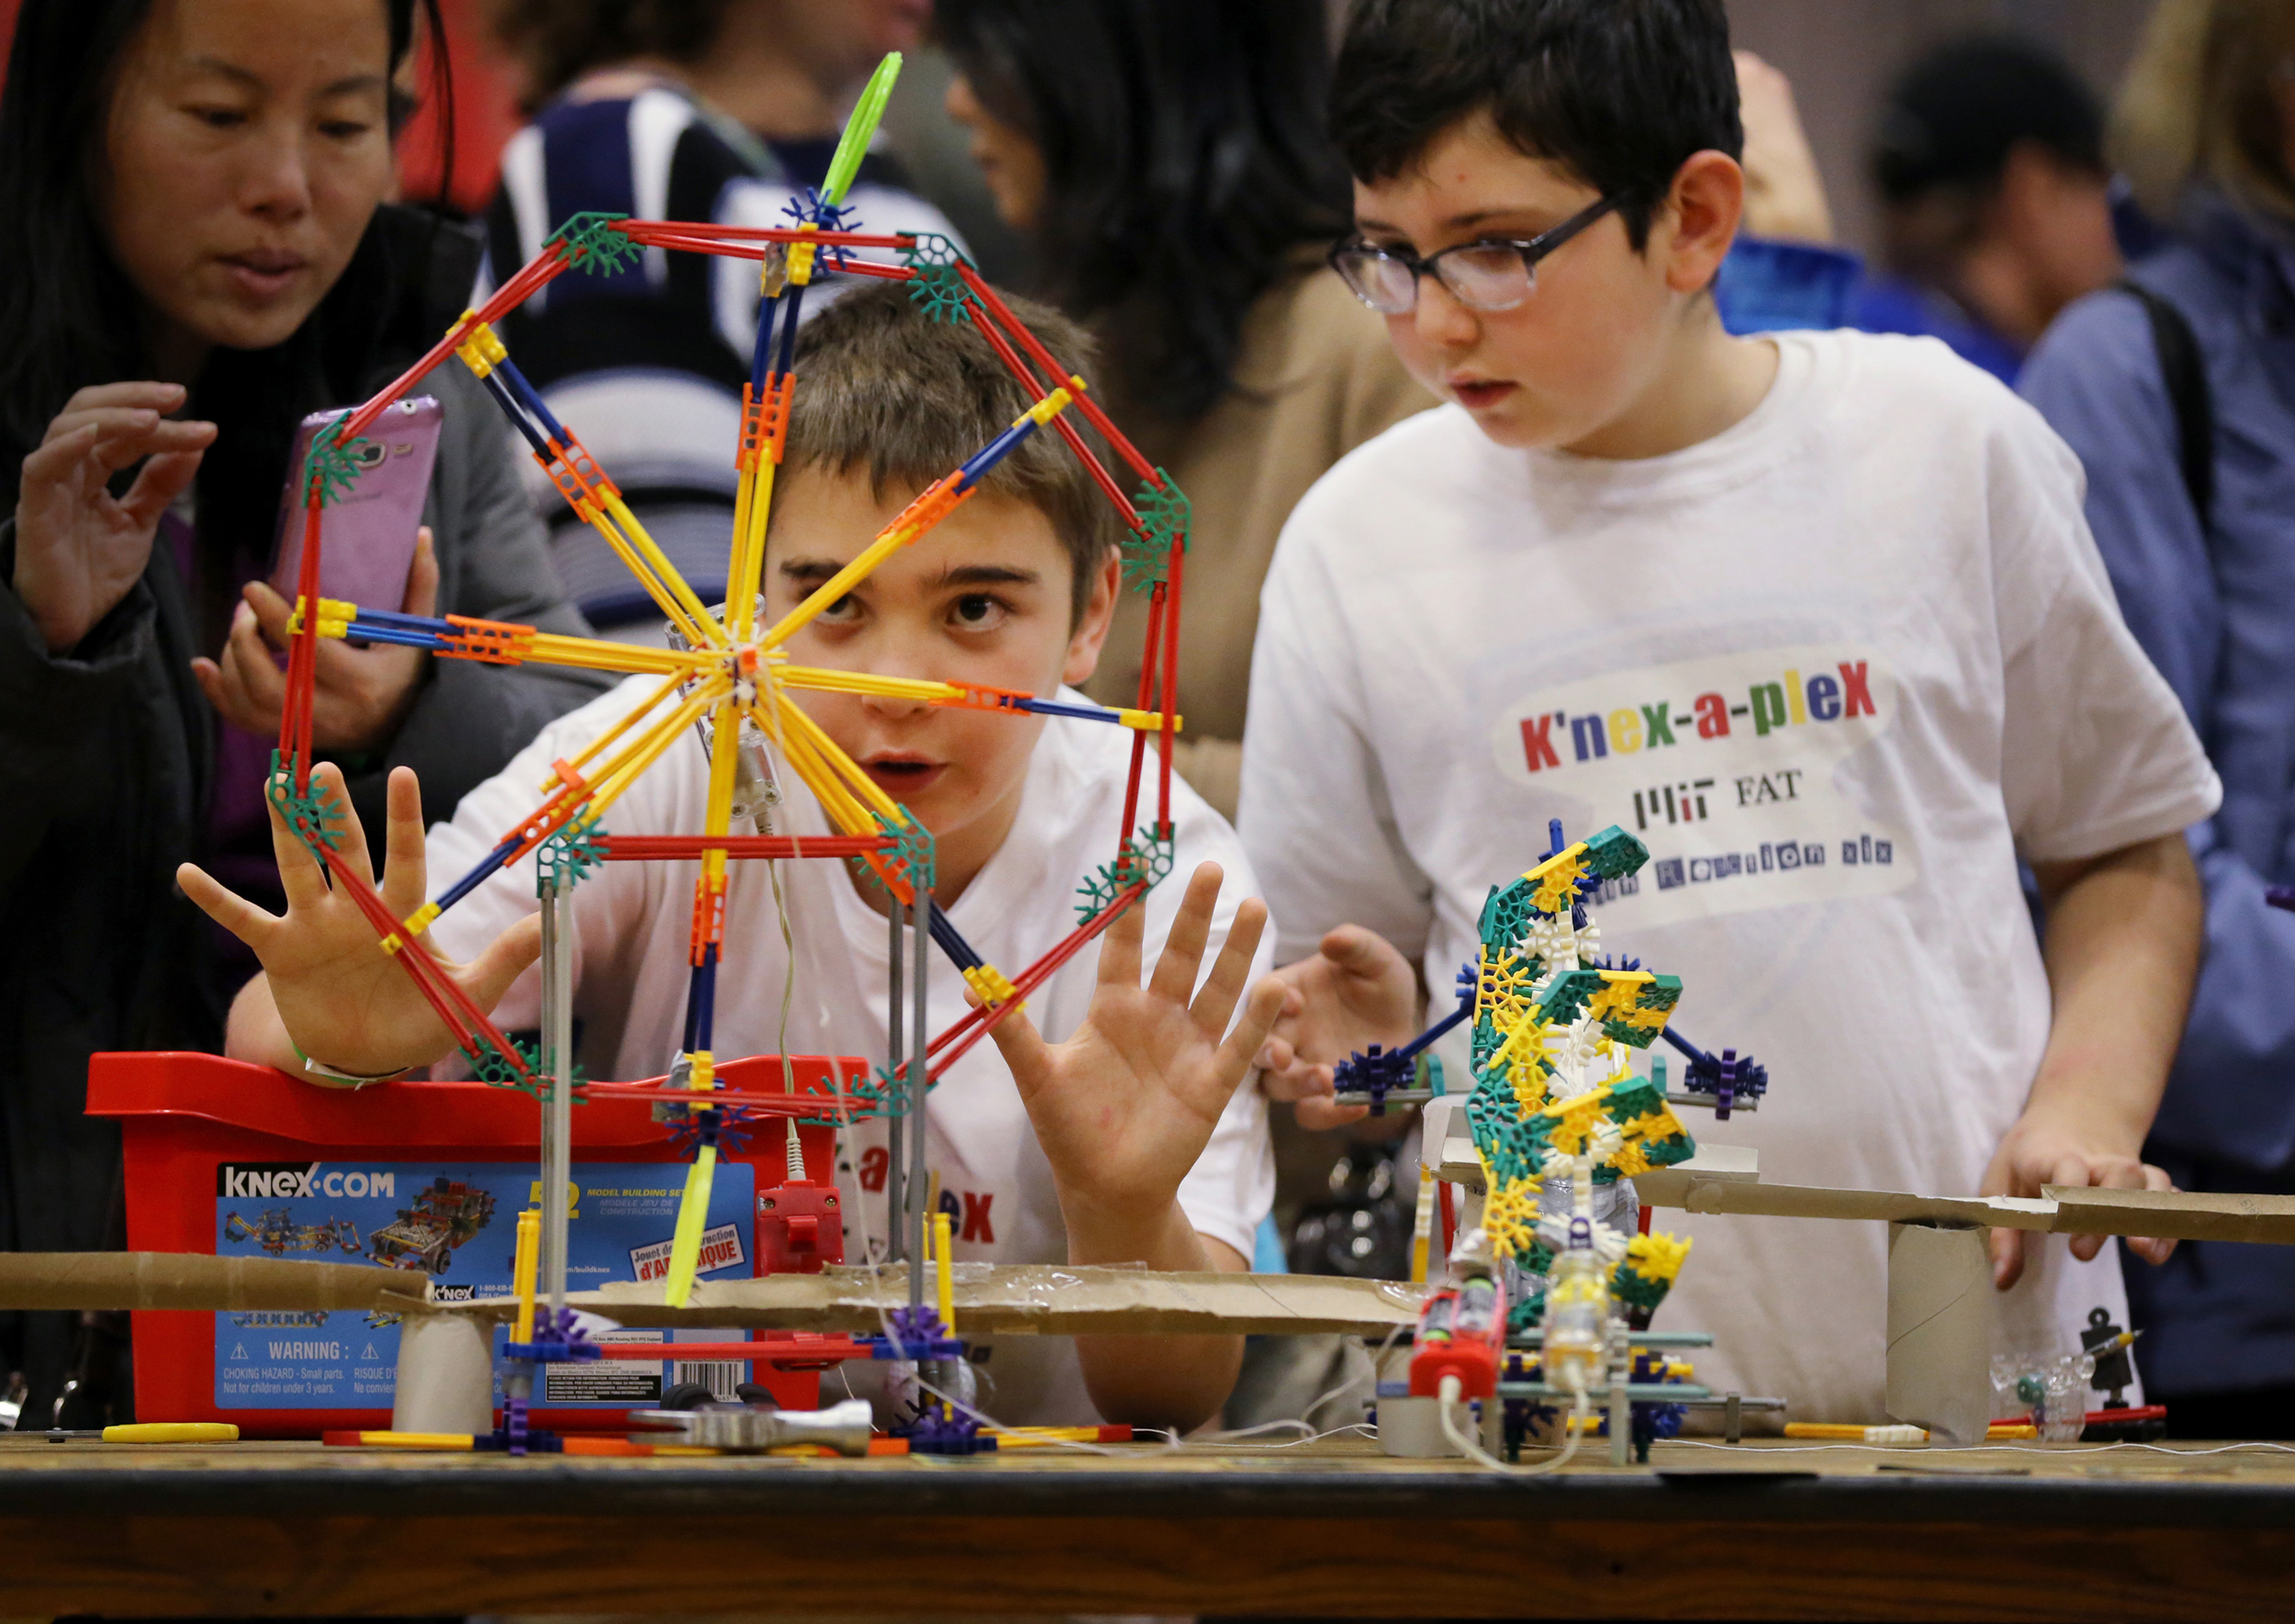 Image: Benjamin Ab, 10, left, and Micheal Kagan, 9, fine-tune their link during the 19th annual Friday After Thanksgiving (F.A.T.) Chain Reaction Event at the Rockwell Cage Gymnasium in Cambridge, Massachusetts on Nov. 25, 2016.